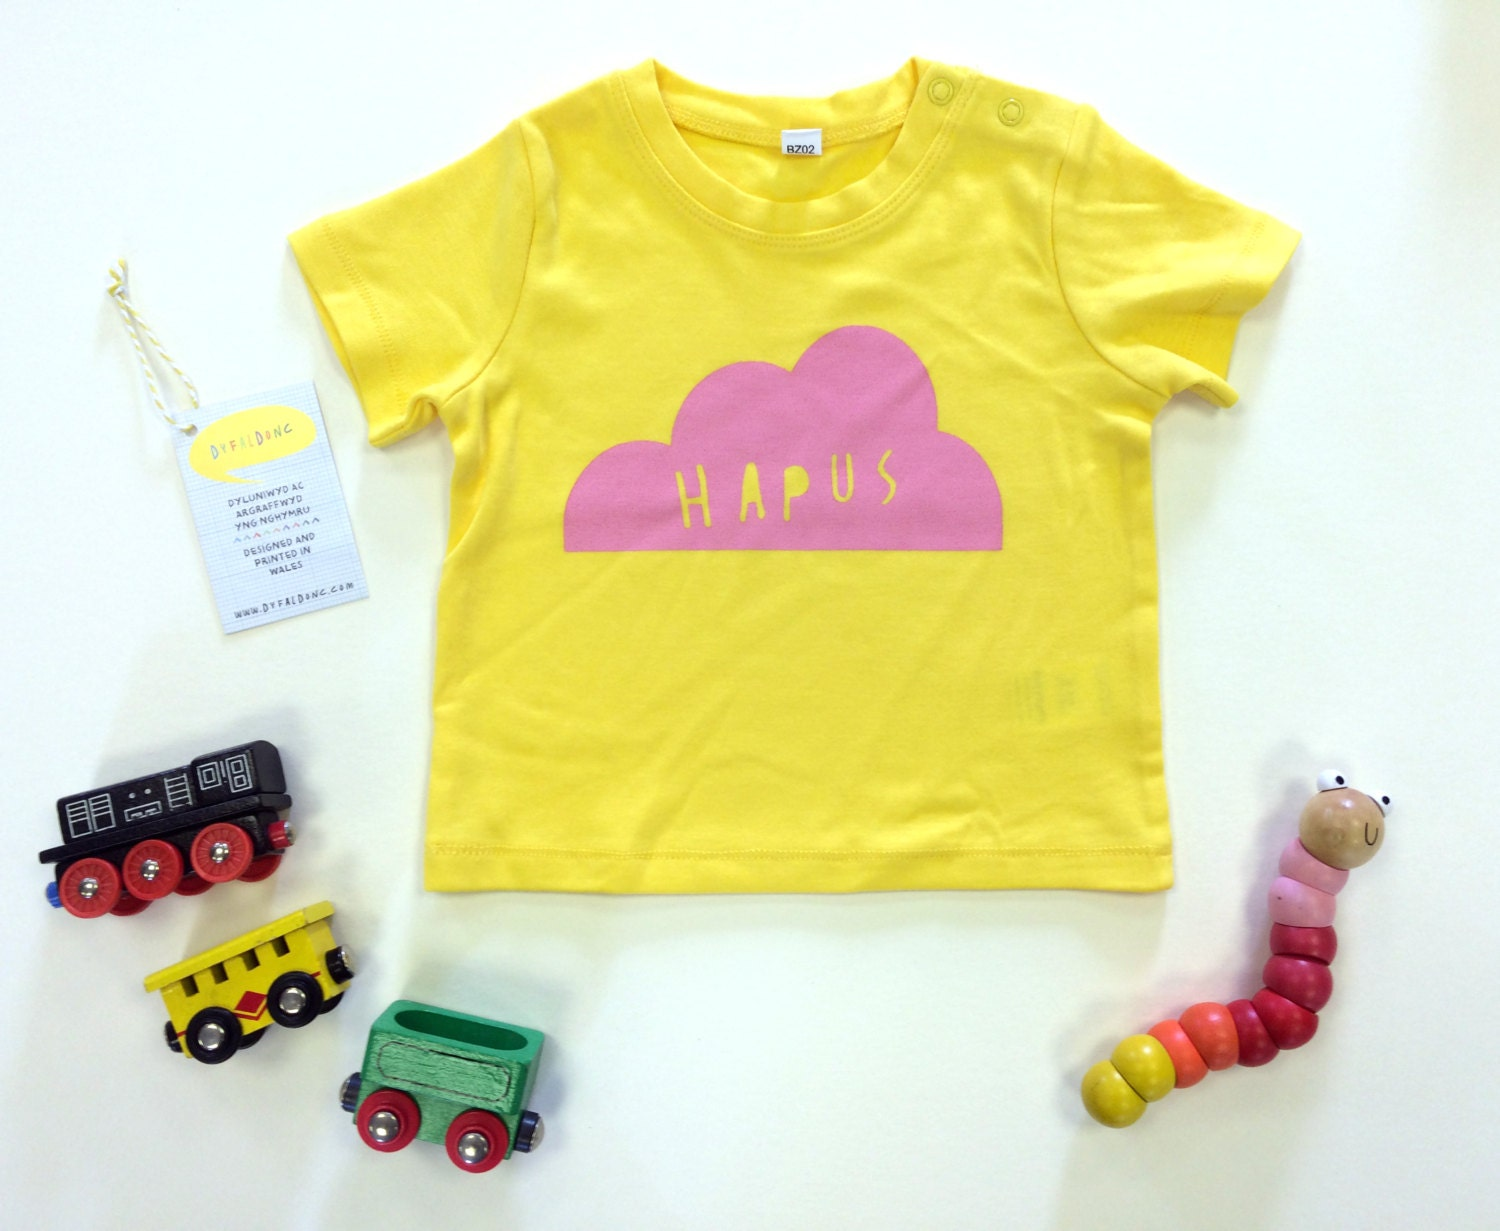 baby clothes yellow t shirt welsh text hapus happy cloud pink